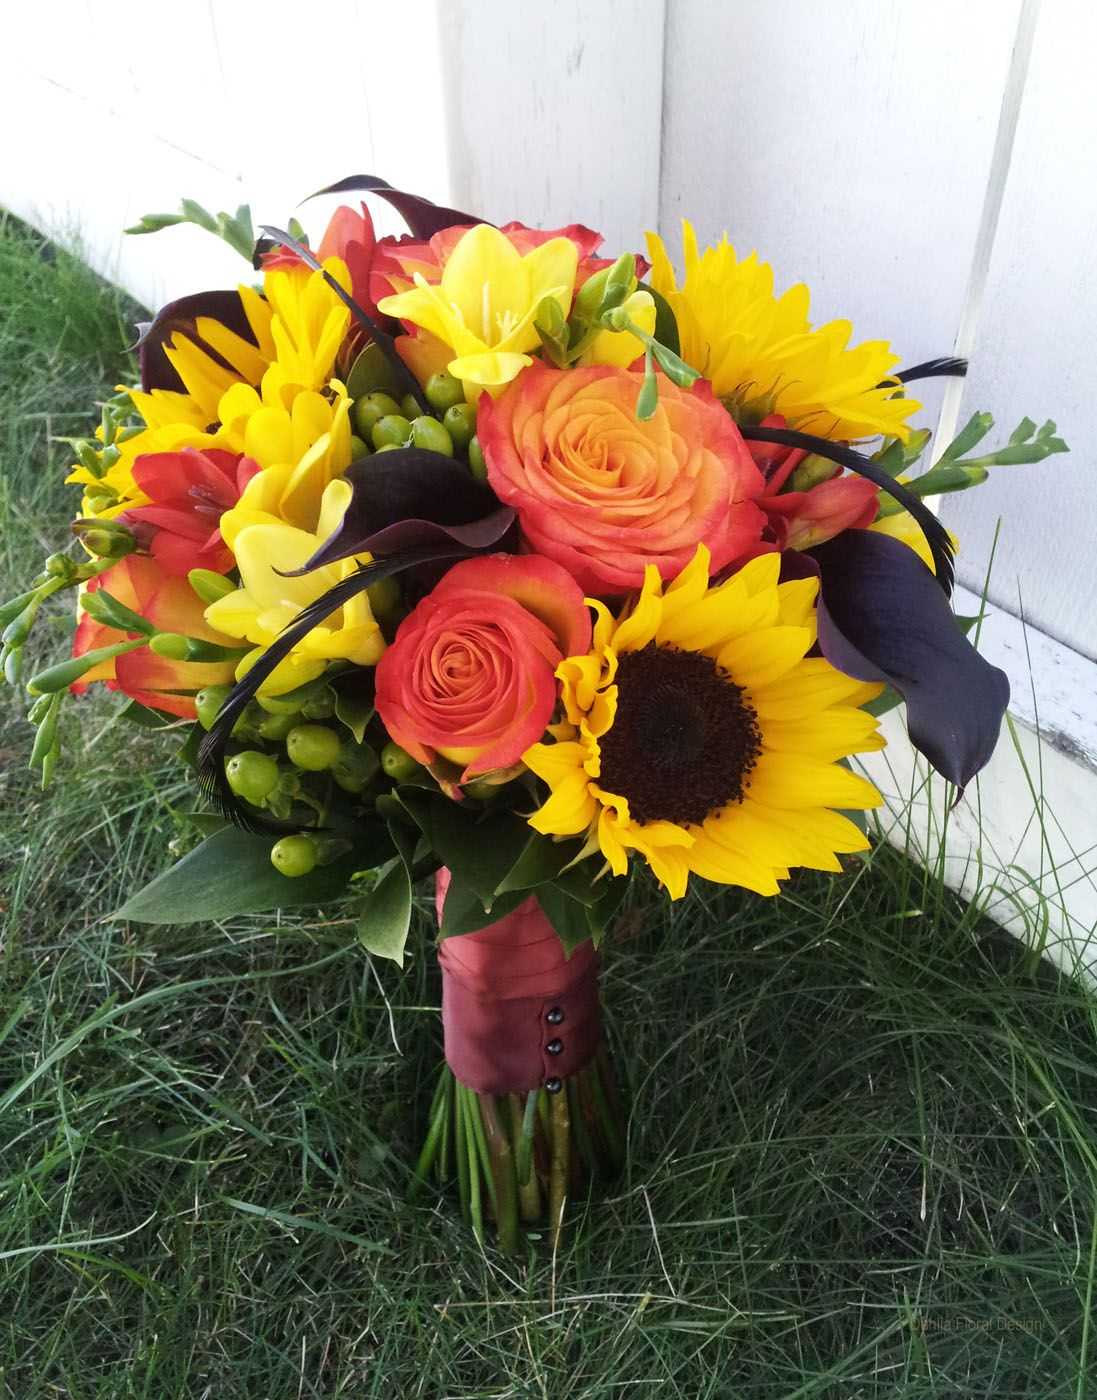 Sunset Colored Wedding Bouquets Dahlia Floral Design Fall Wedding Bouquets Sunflower Wedding Bouquet Sunflower Wedding